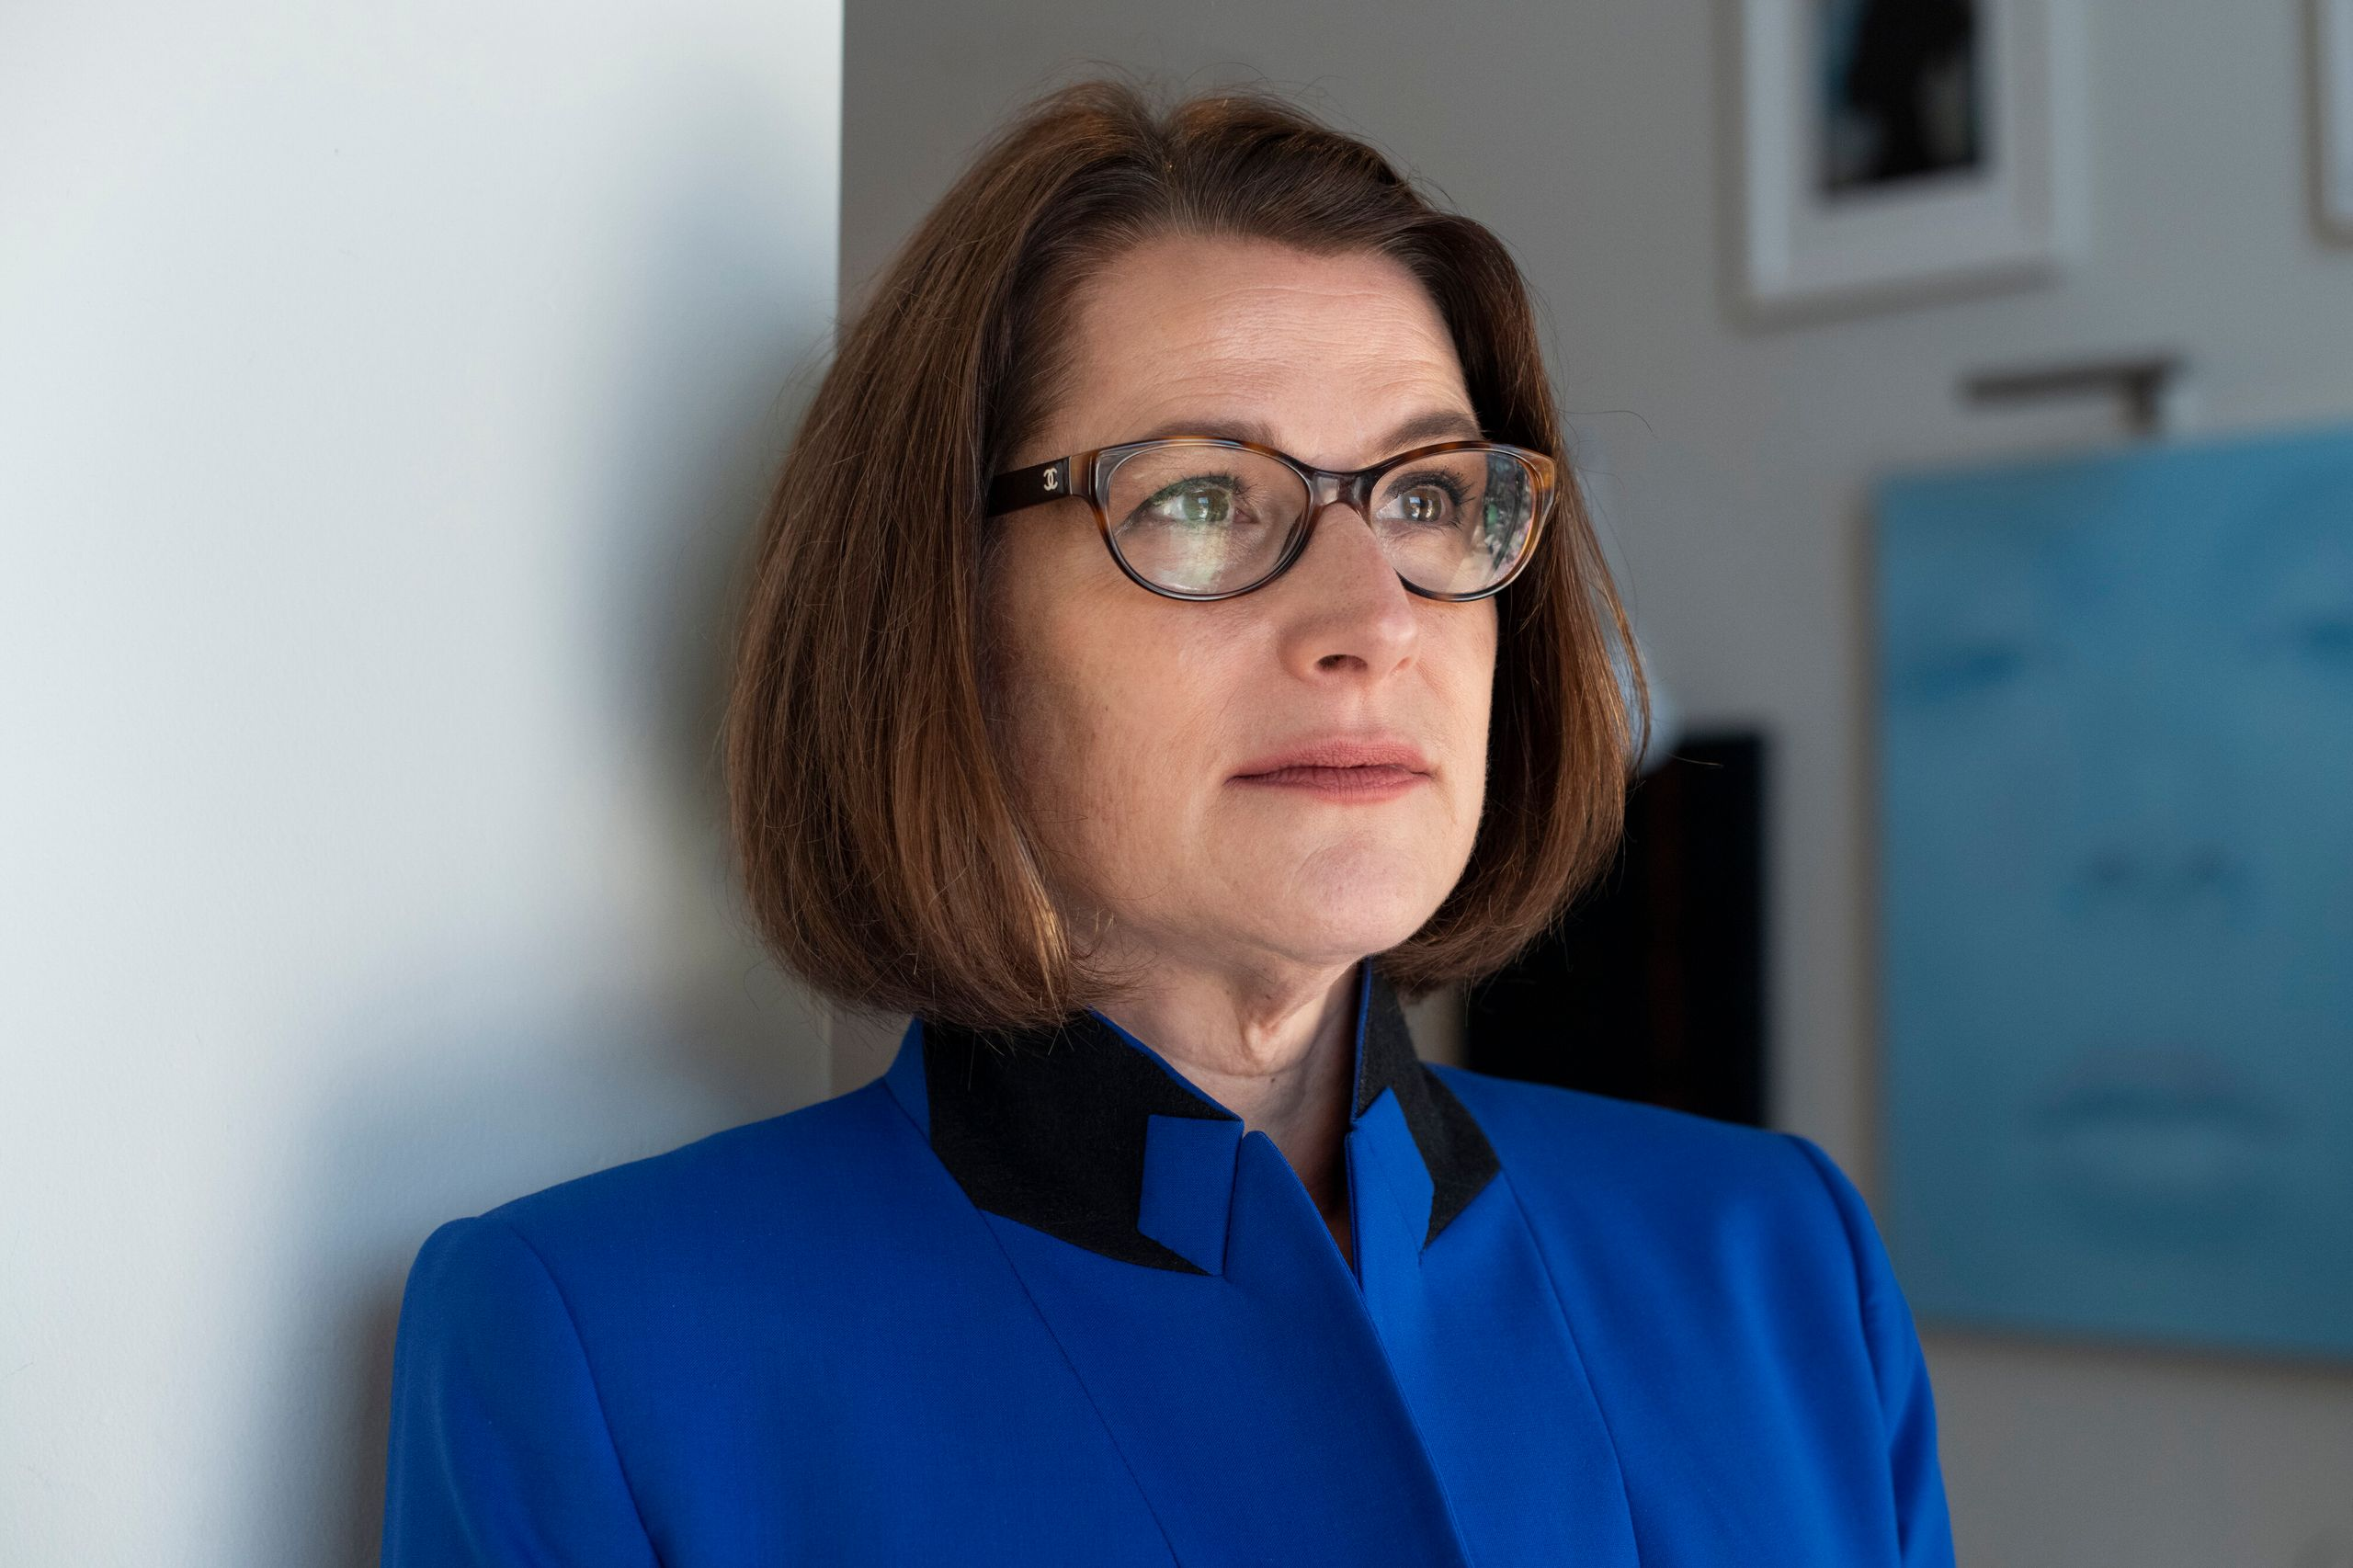 Kate Nicholson, seen at her home in Boulder, Colorado, is a civil rights attorney and pain patient advocate who lived with ch